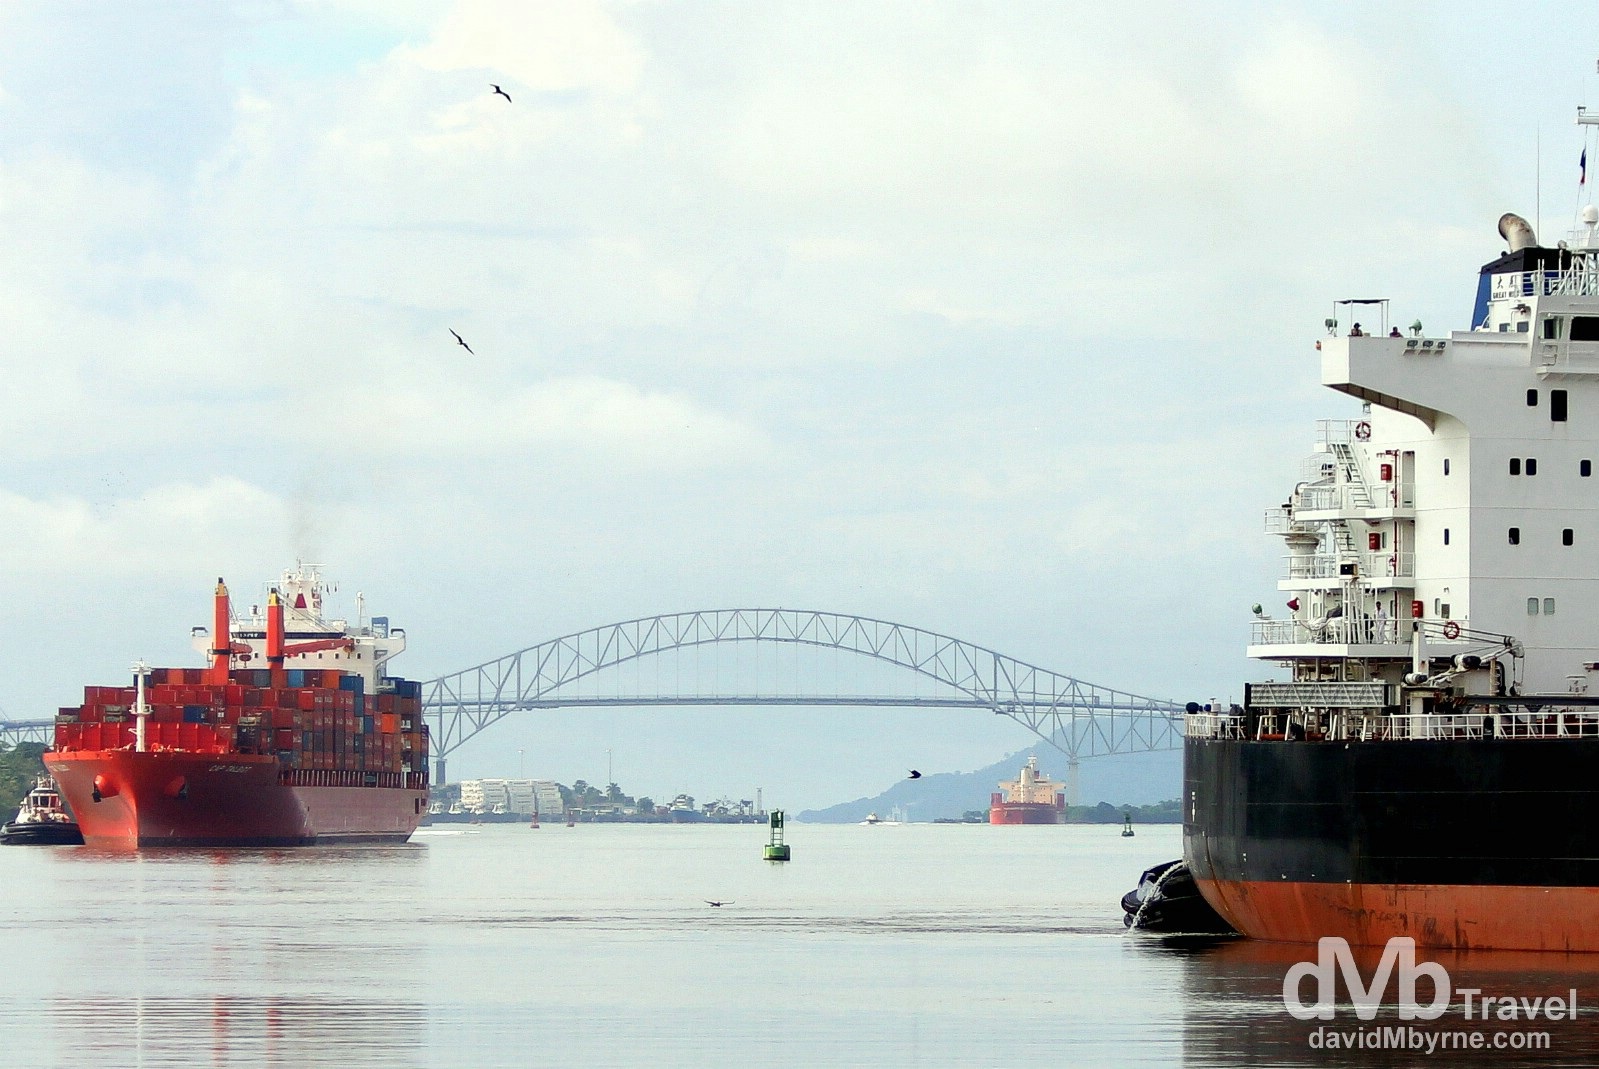 A (slow) convoy of cargo ships approaching the Miraflores Locks of the Panama Canal, Panama. July 1st 2013.